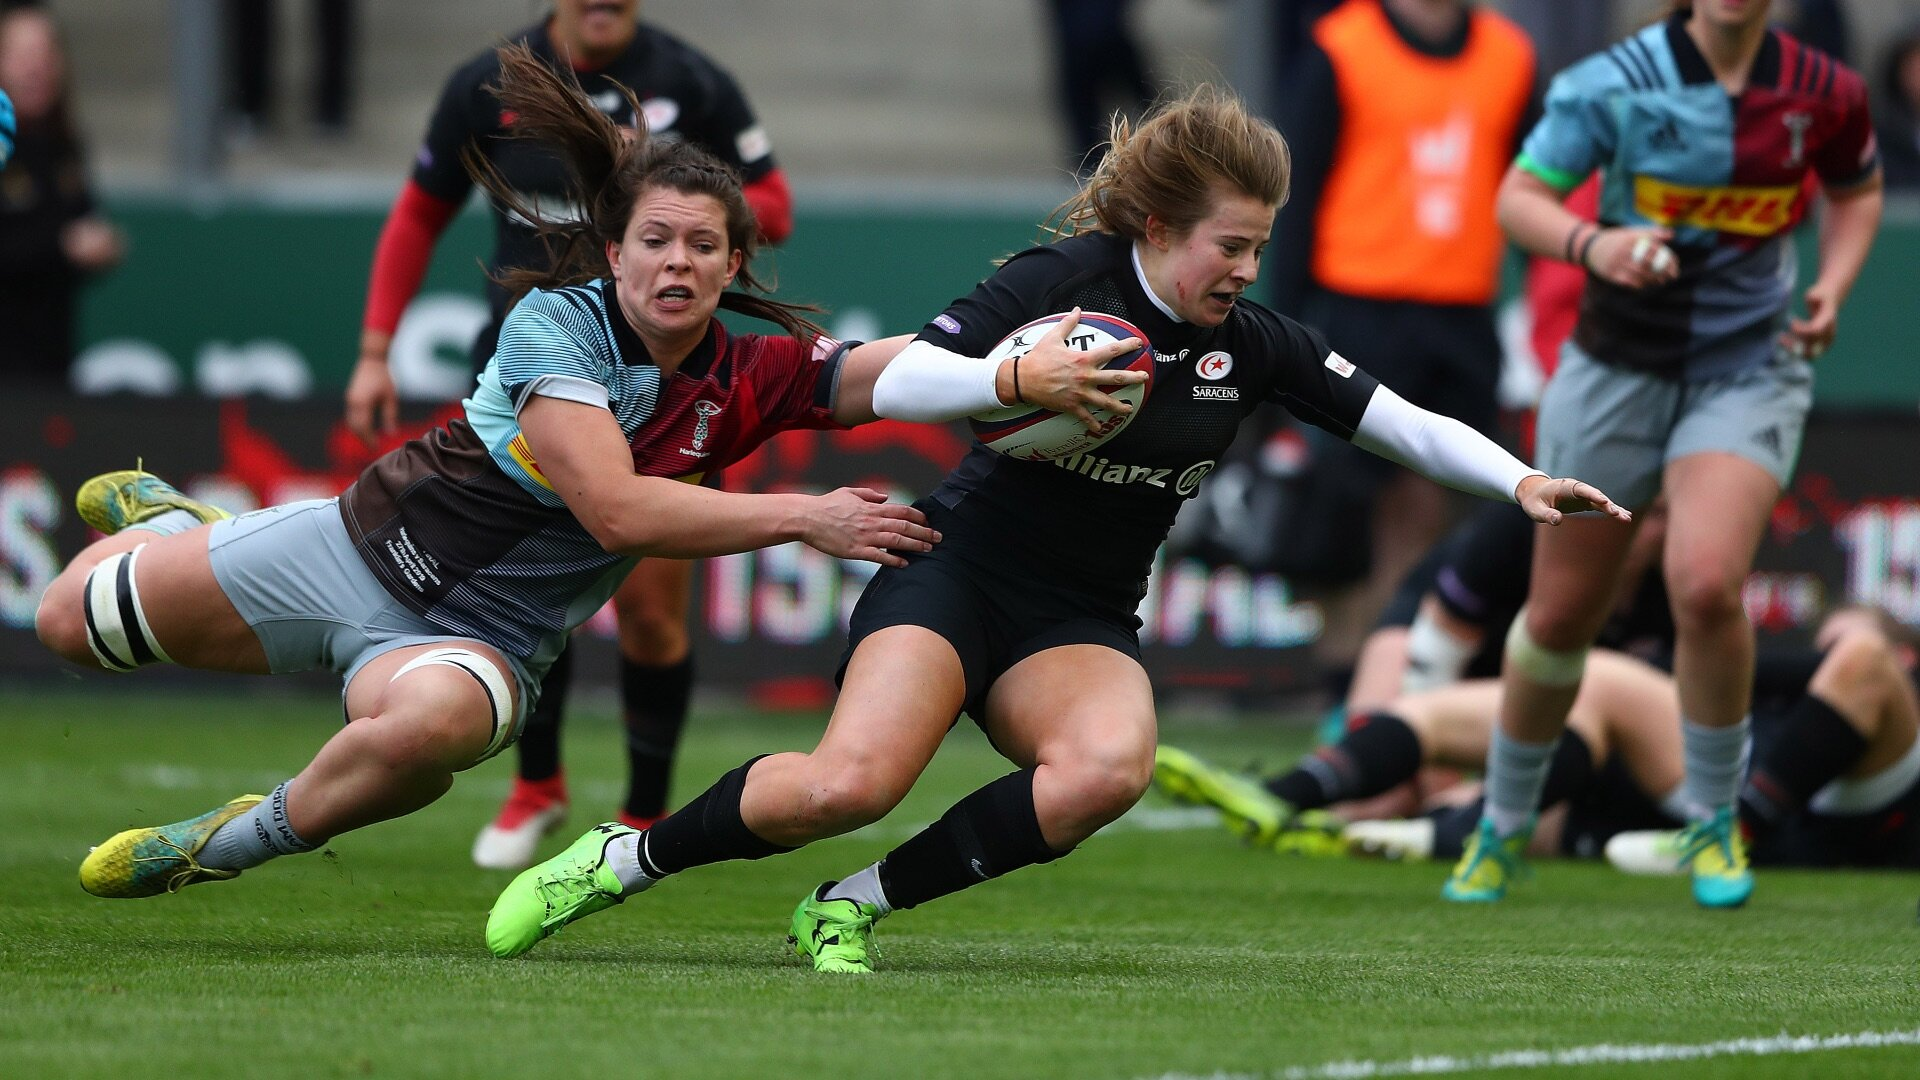 'If you haven't seen women's rugby and you don't actually know about it, that is annoying'